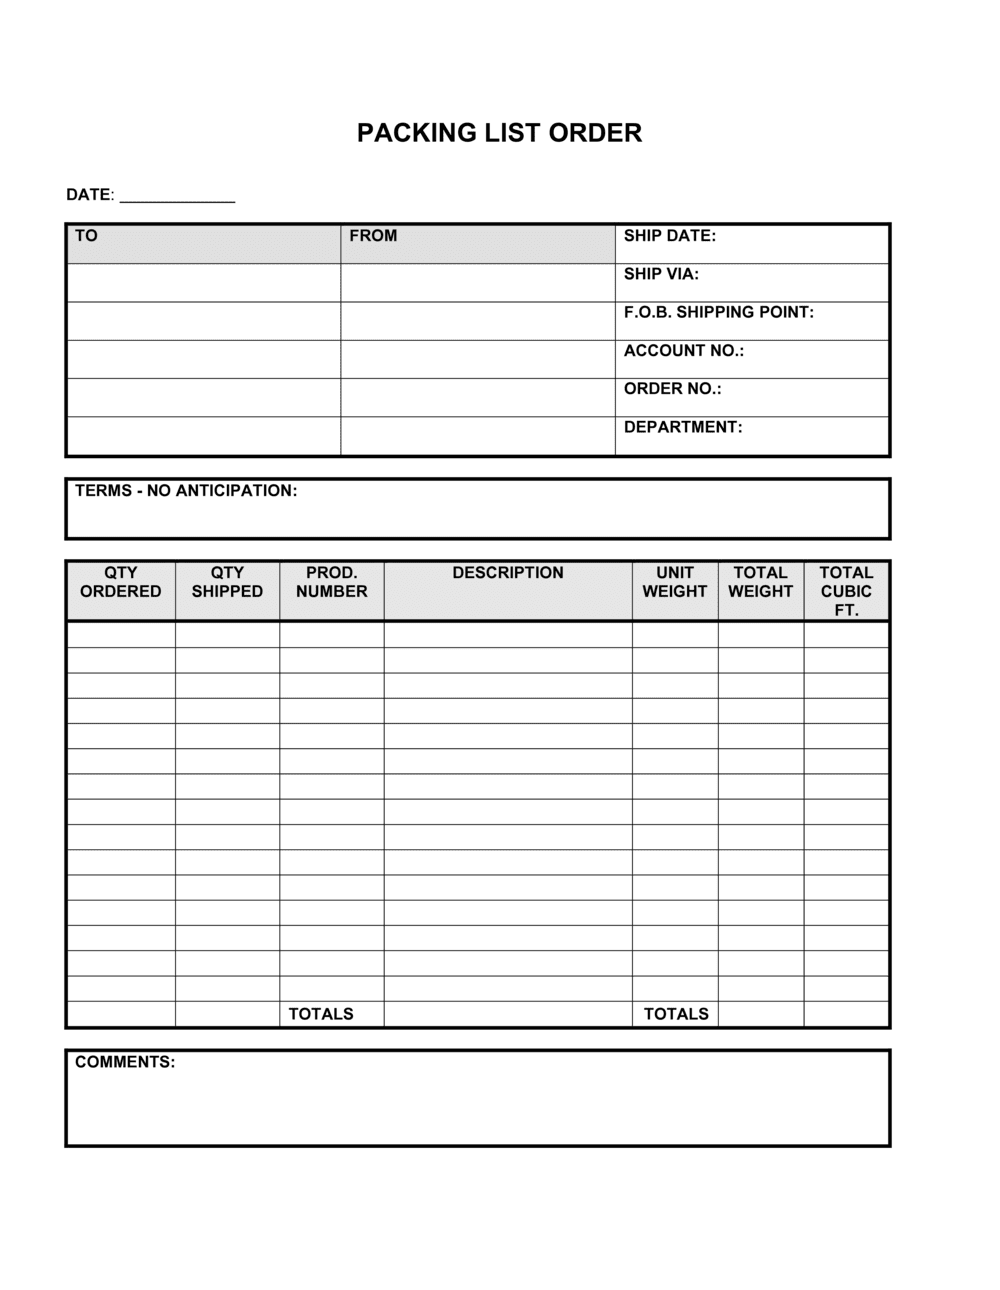 Business-in-a-Box's Packing List of Order Template